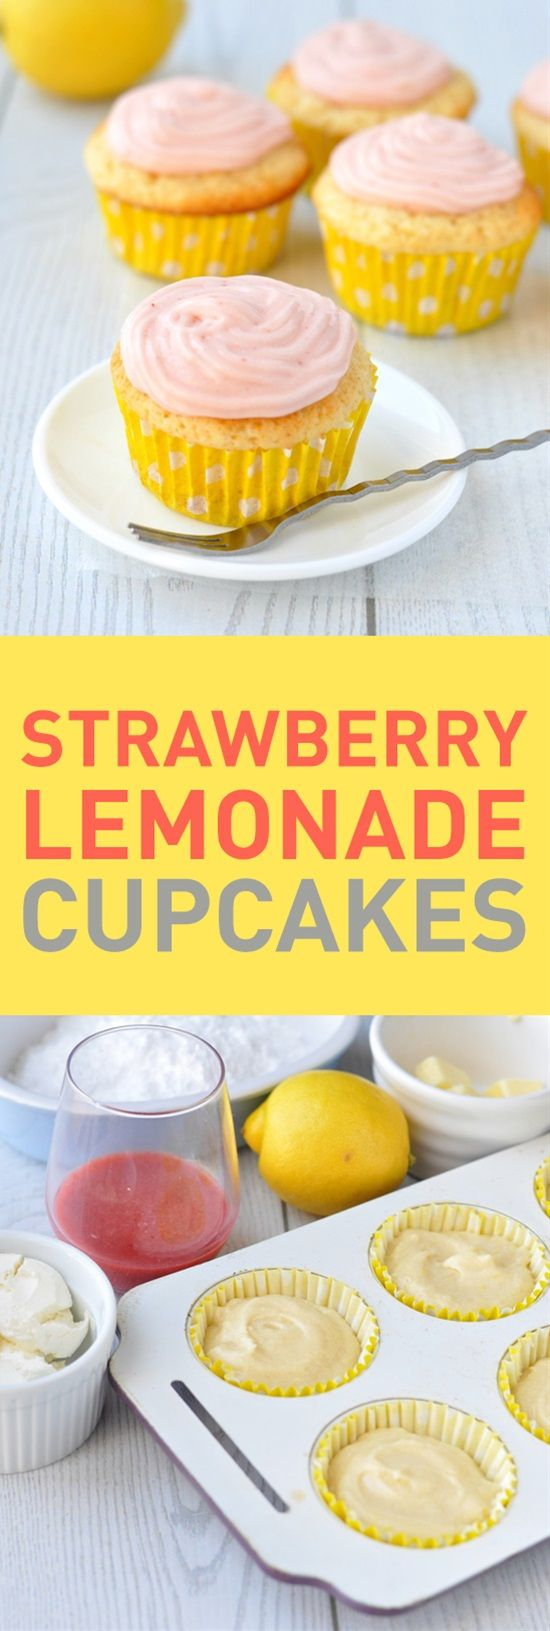 These strawberry lemonade cupcakes are the perfect sweet treat for summer! Whether you give them to your kids as an afternoon snack, to a family member as a birthday surprise or to your friends as a picnic dessert, everyone will be hooked after their first bite of these cupcakes.